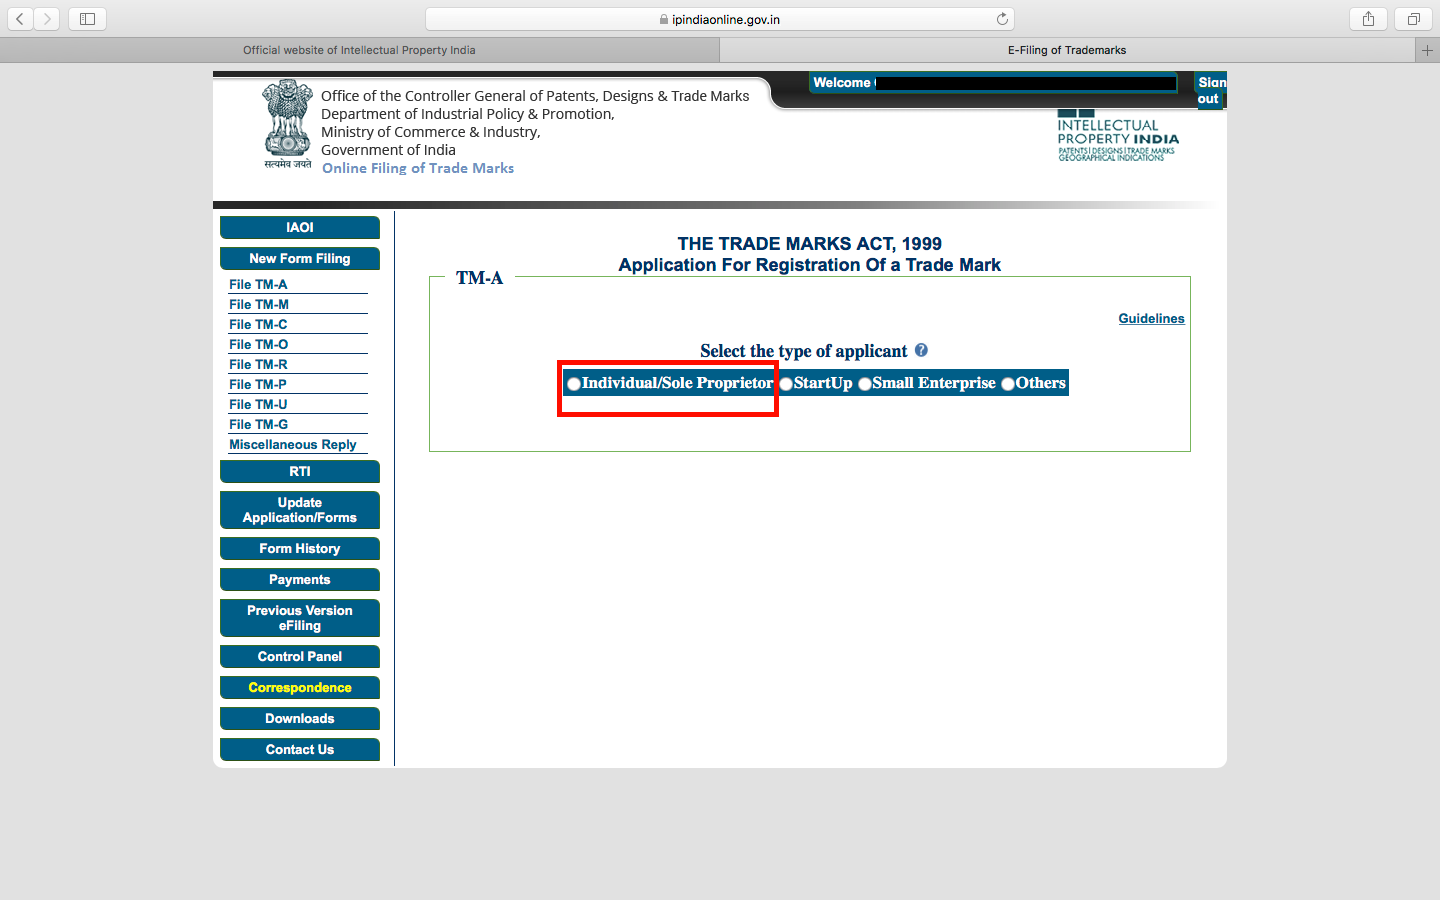 Trademark Application- Type of Applicant